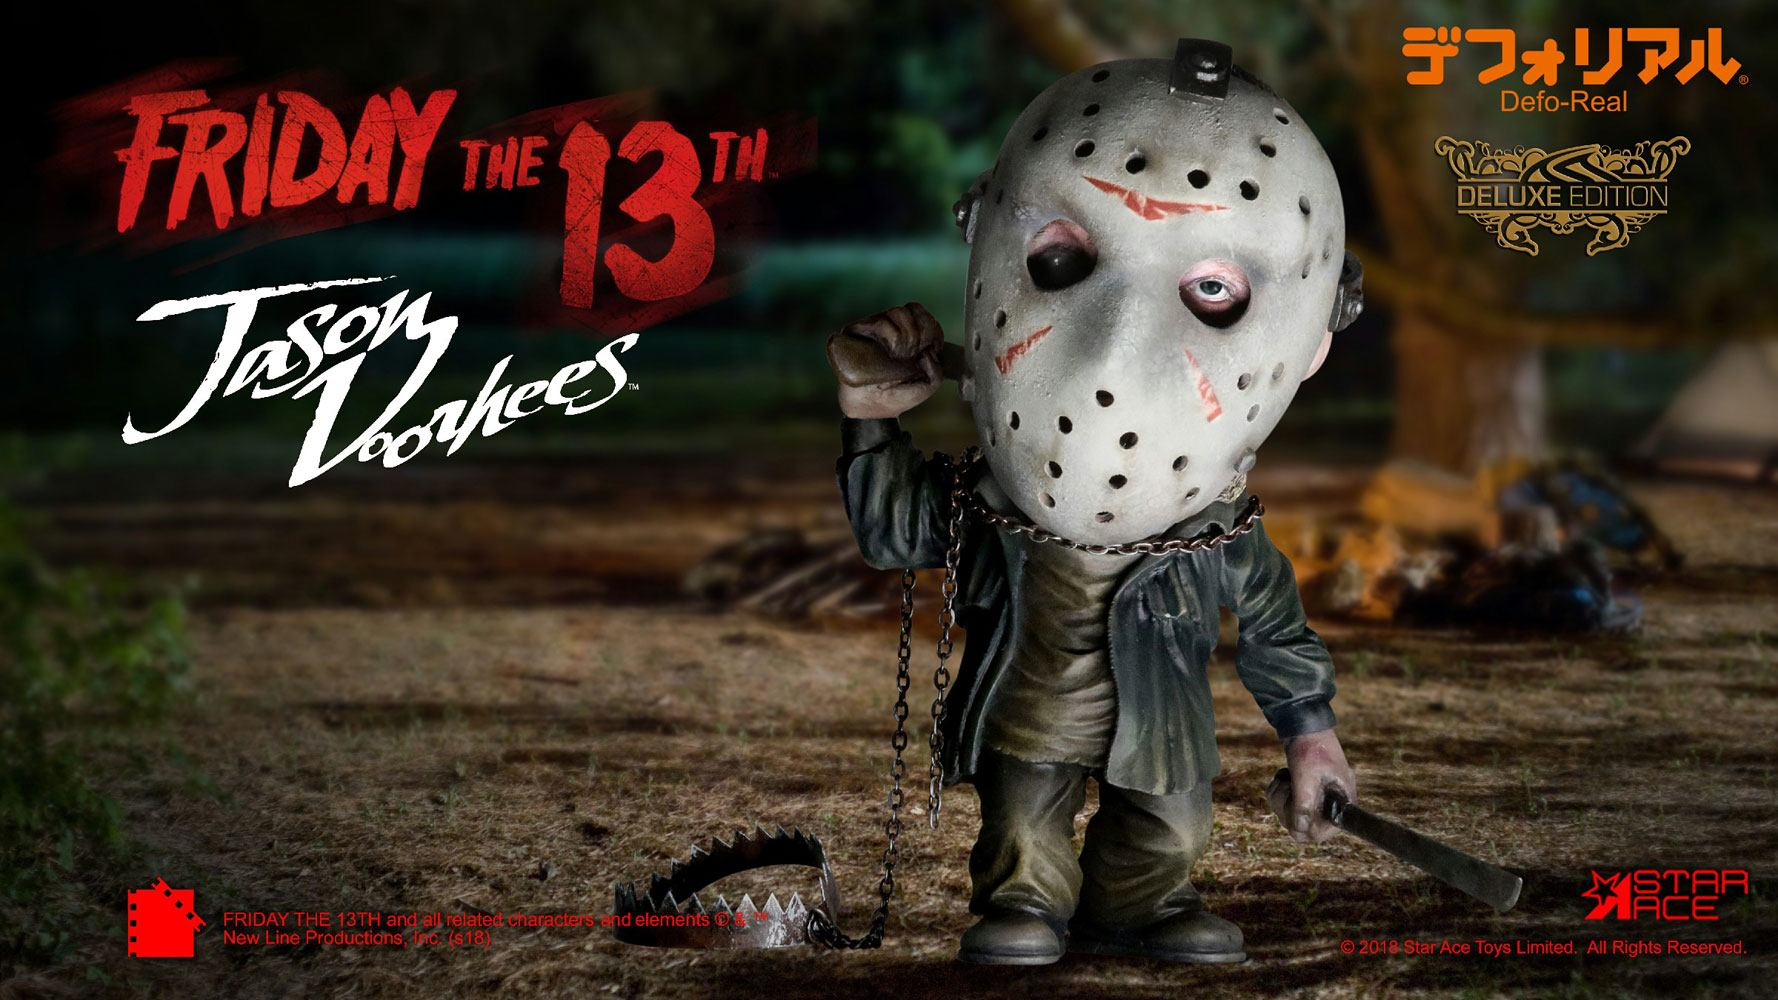 Friday the 13th Defo-Real Series Soft Vinyl Figure Jason Voorhees Deluxe Vs